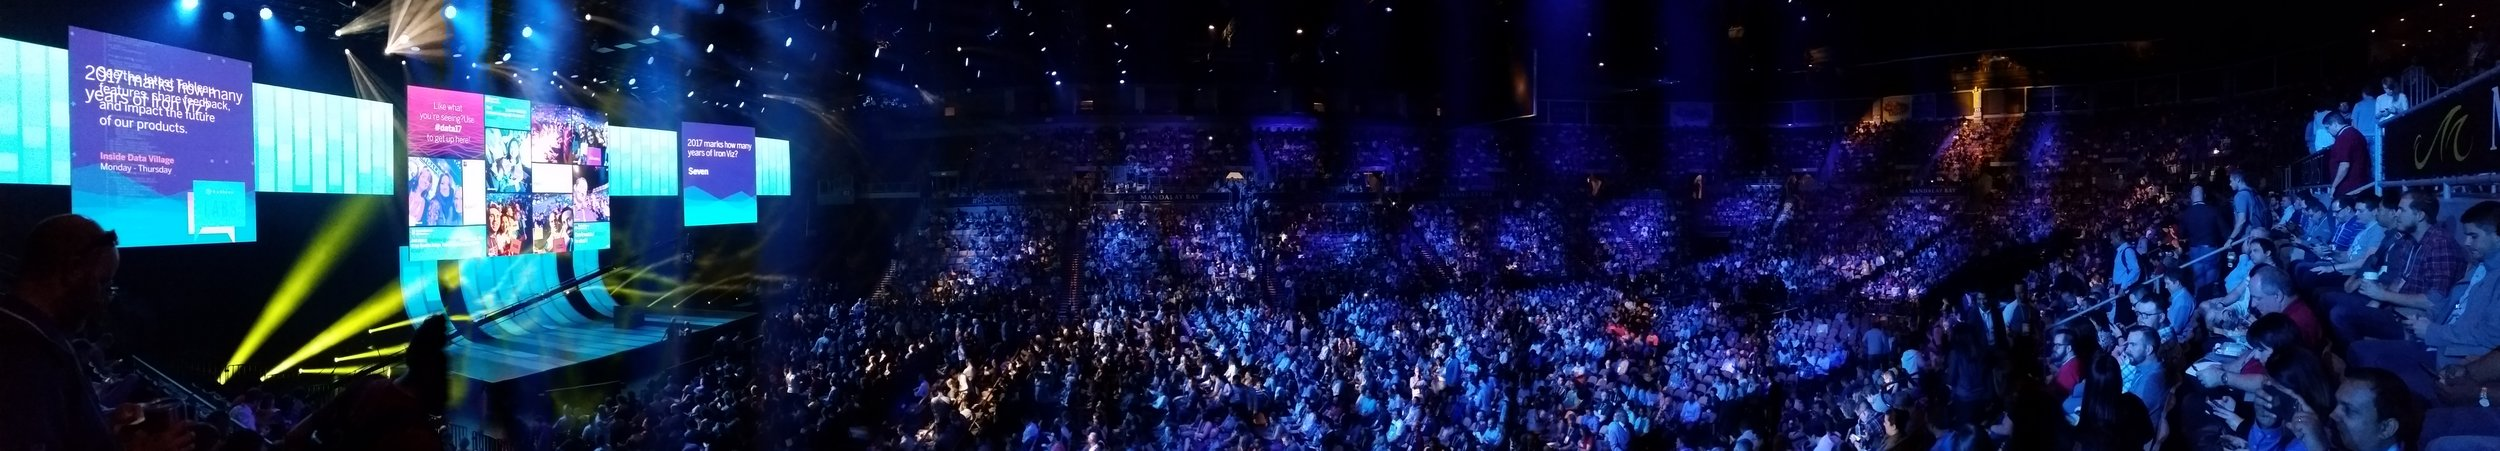 Keynote Panoramic.jpg